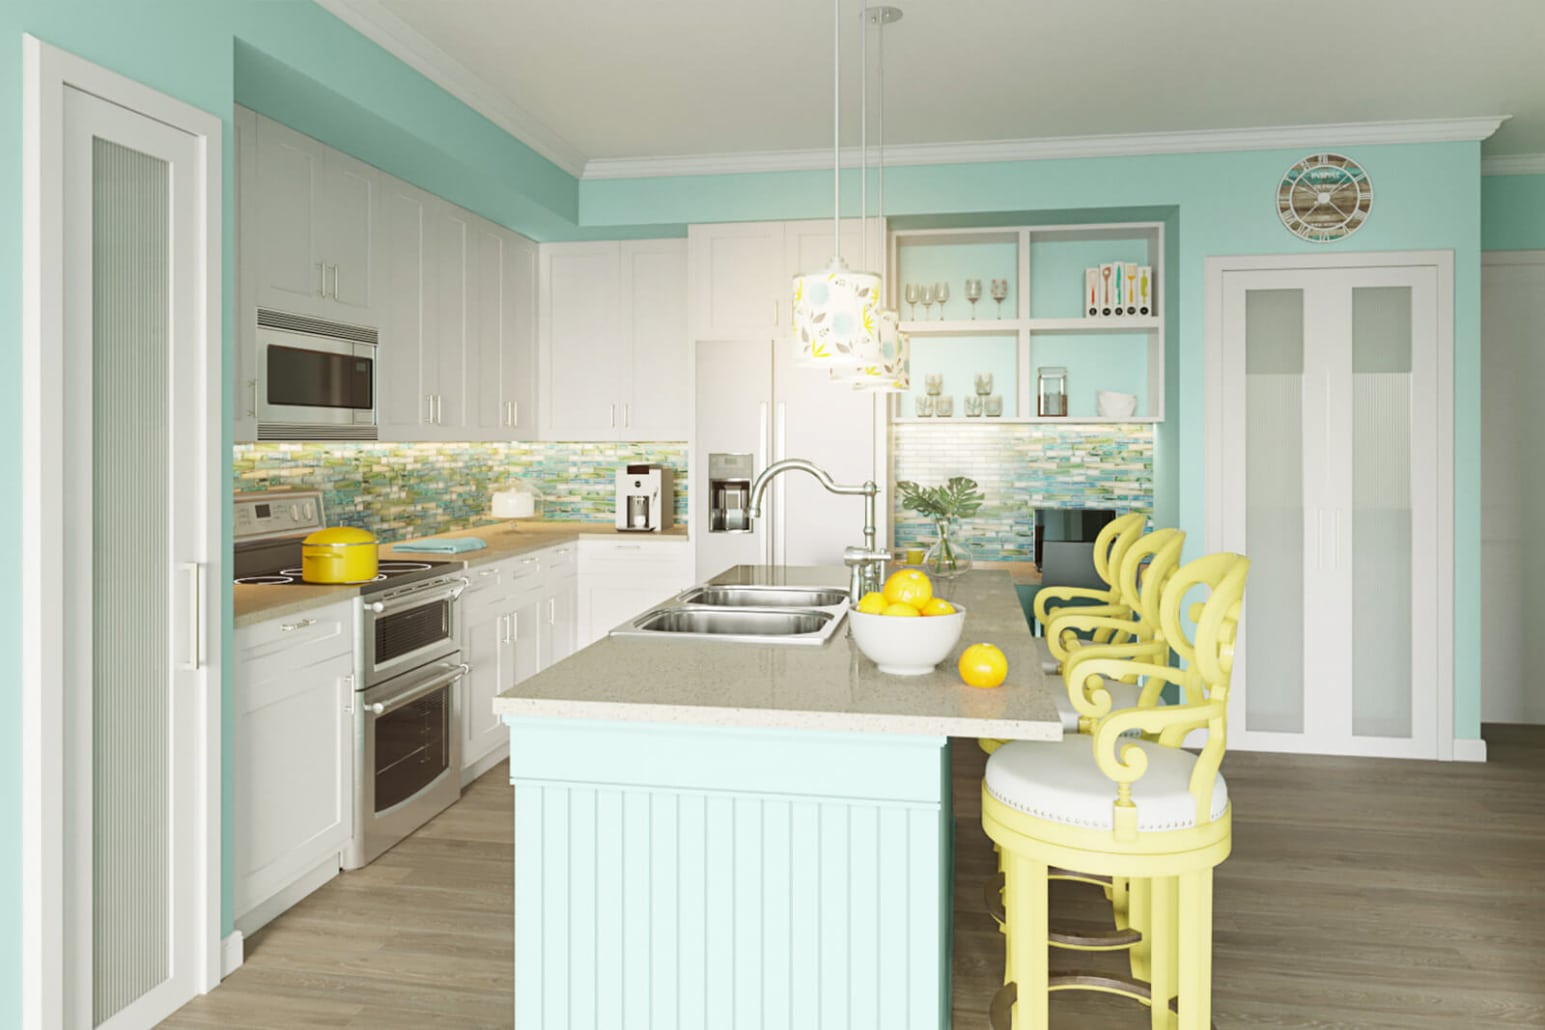 Floridian Kitchen Version A. 3D rendering for testing backsplash, counter tops, chairs, accessories, flooring, and cabinetry.